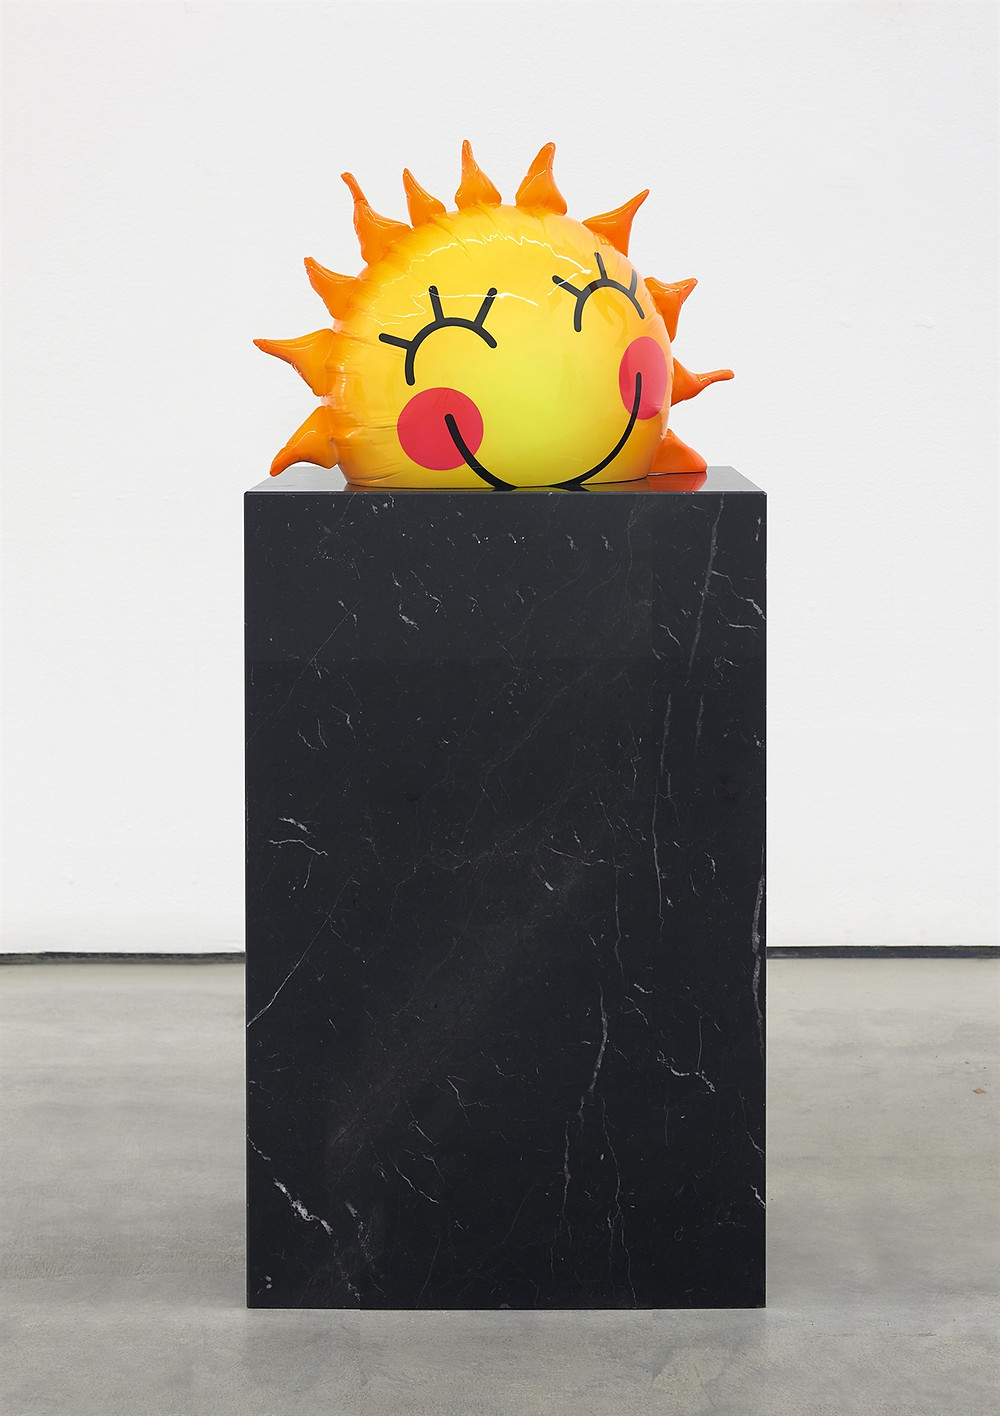 sculpture of a smiling sun on a pedestal